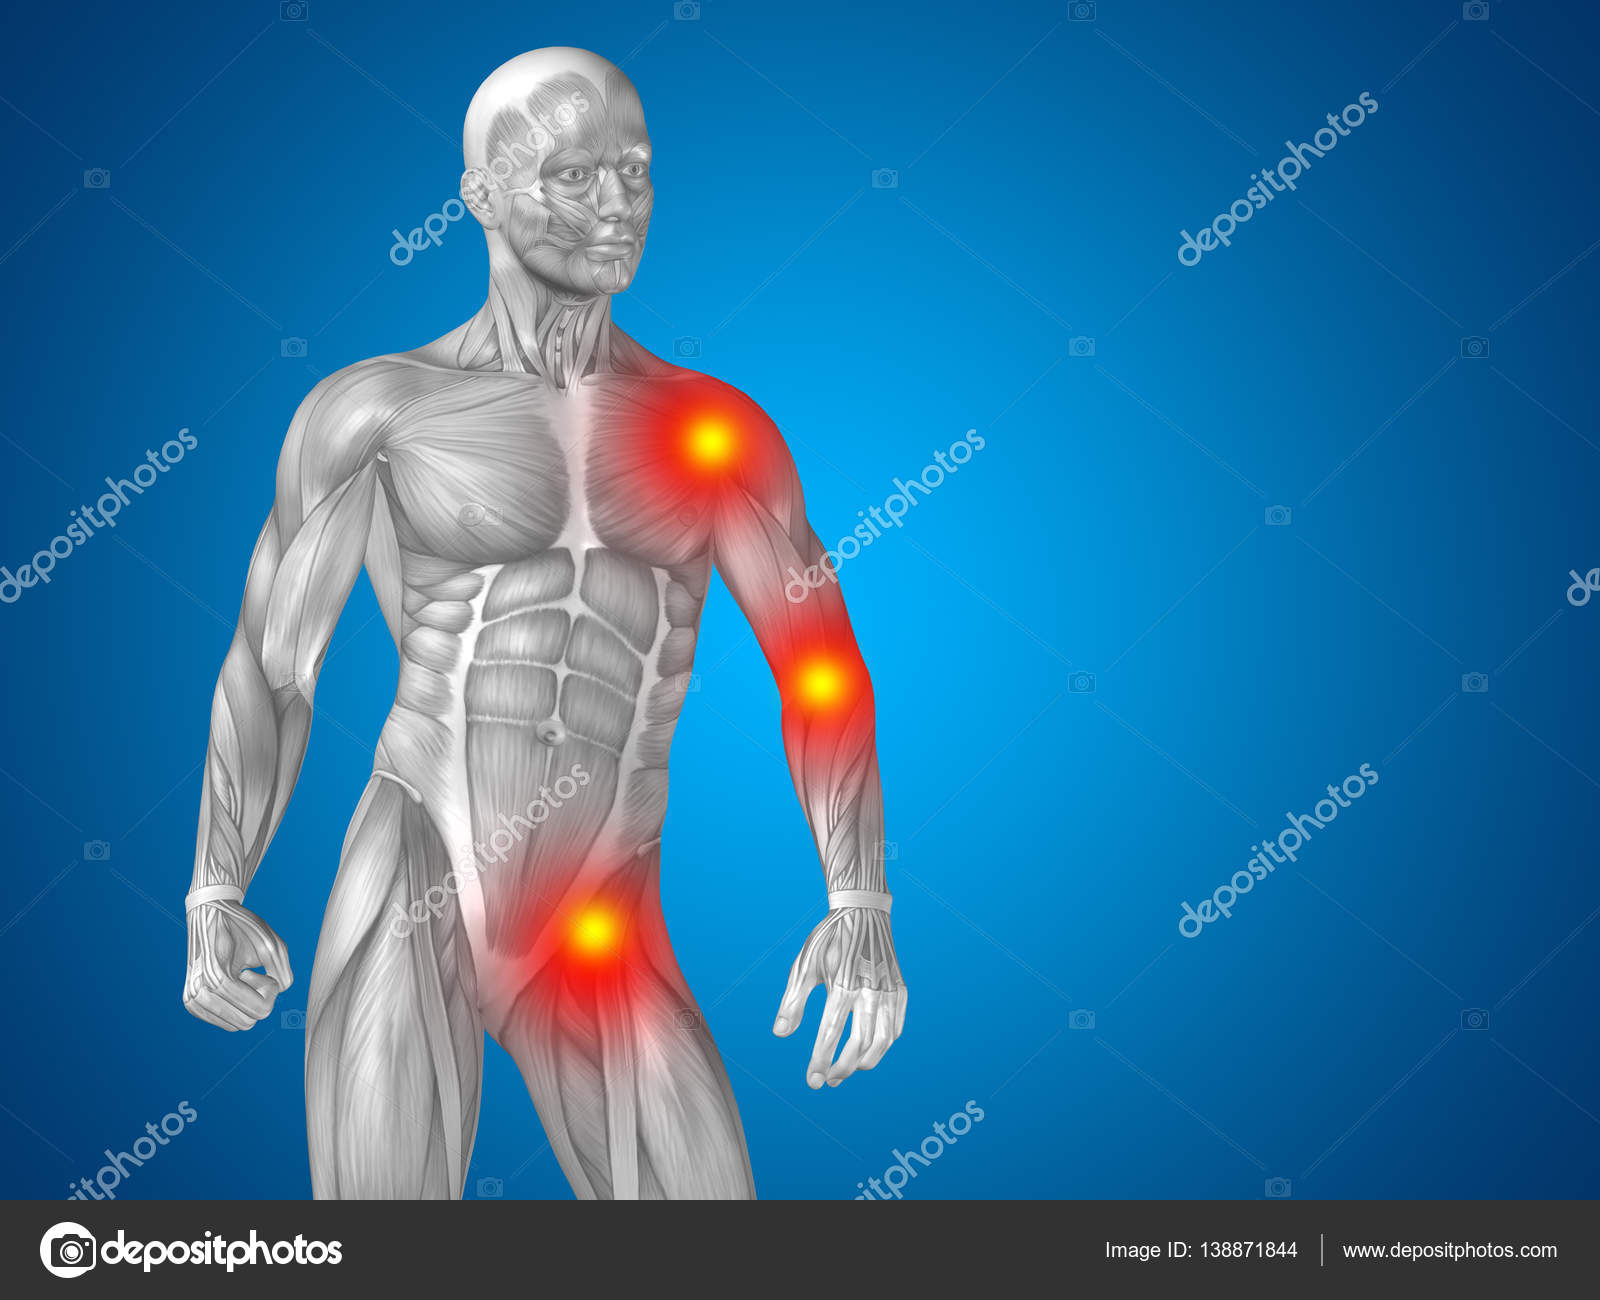 human upper body anatomy — Stock Photo © design36 #138871844